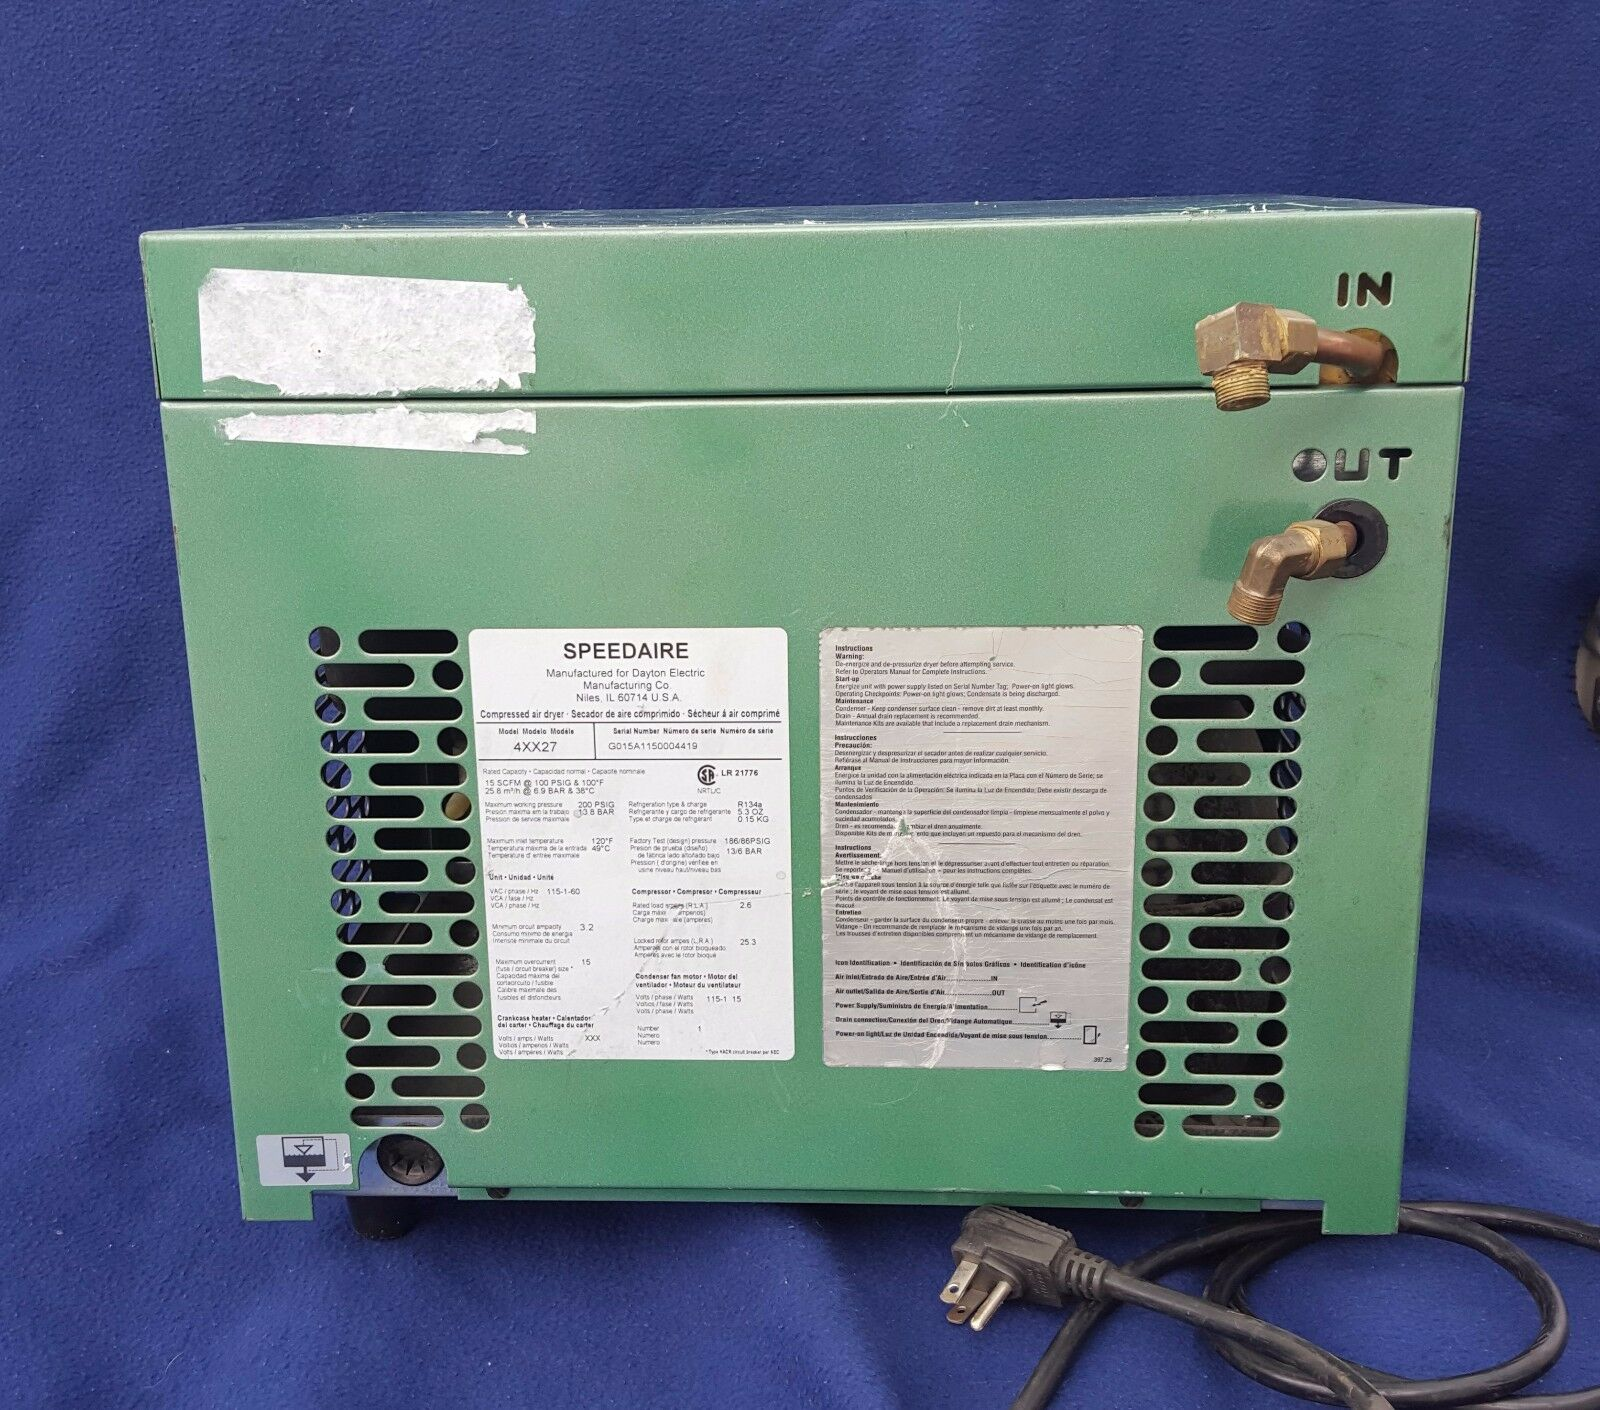 520B Side Port 15 CFM Compressed Air Extractor Dryer Great 4 Plasma Cutters